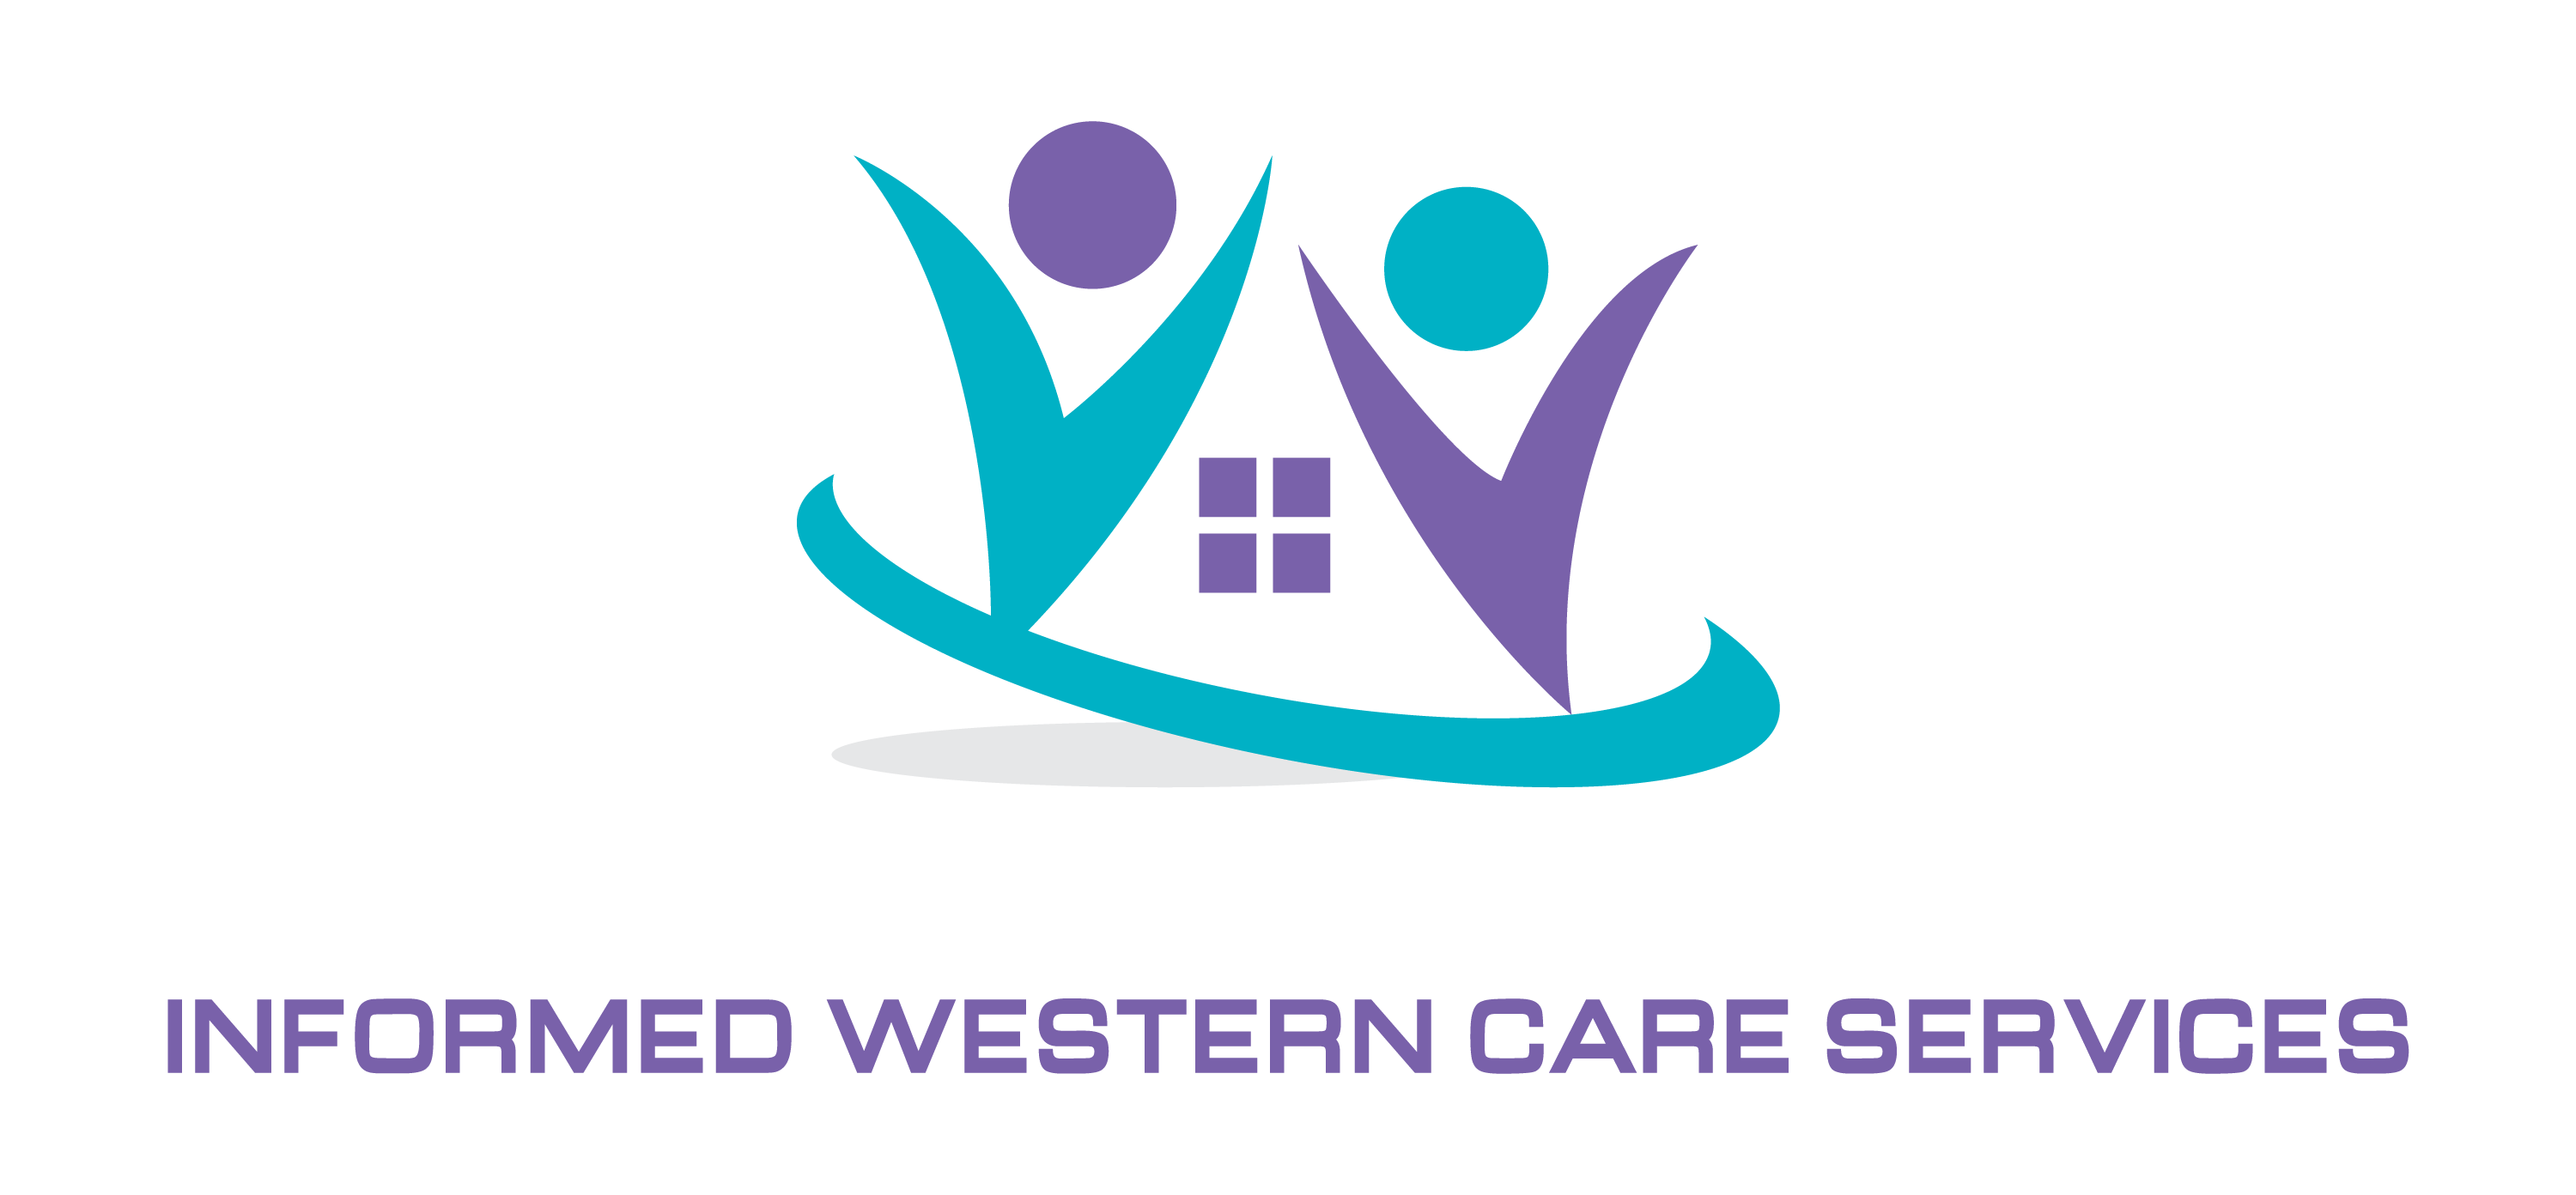 Informed Western Care Services